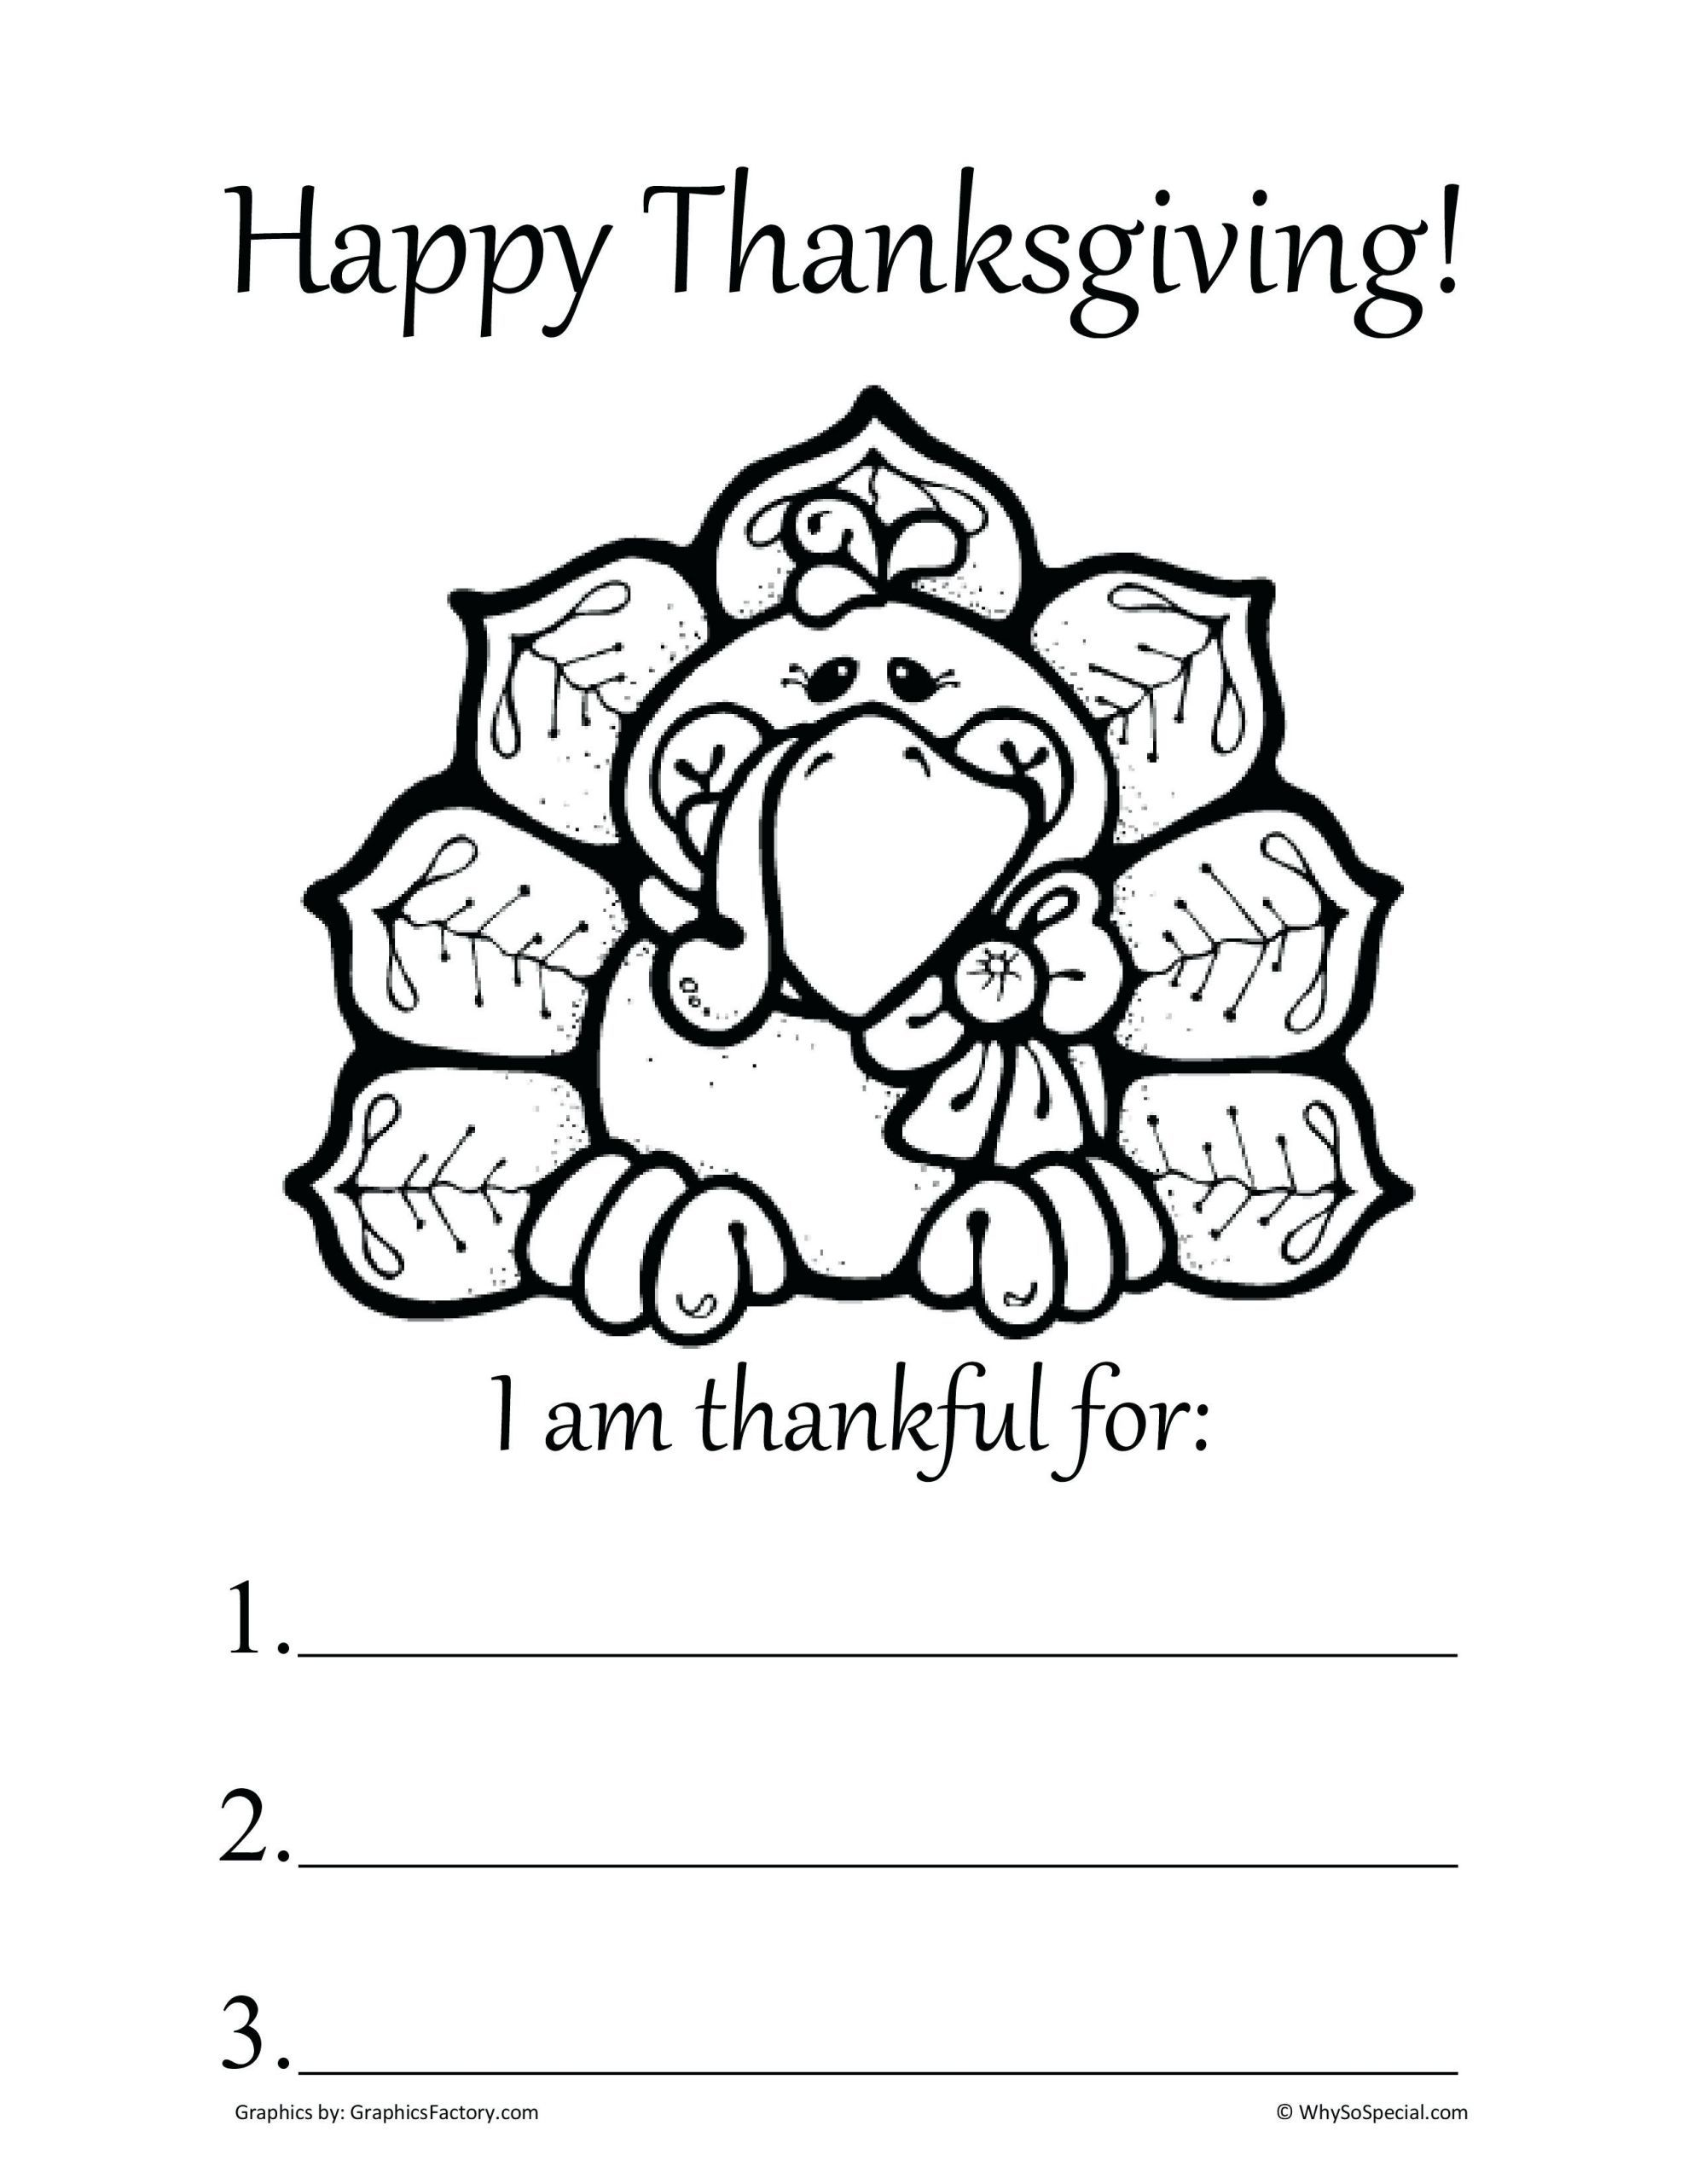 hight resolution of 4 Free Math Worksheets Second Grade 2 Skip Counting Skip Counting by 50  thank…   Thanksgiving math worksheets